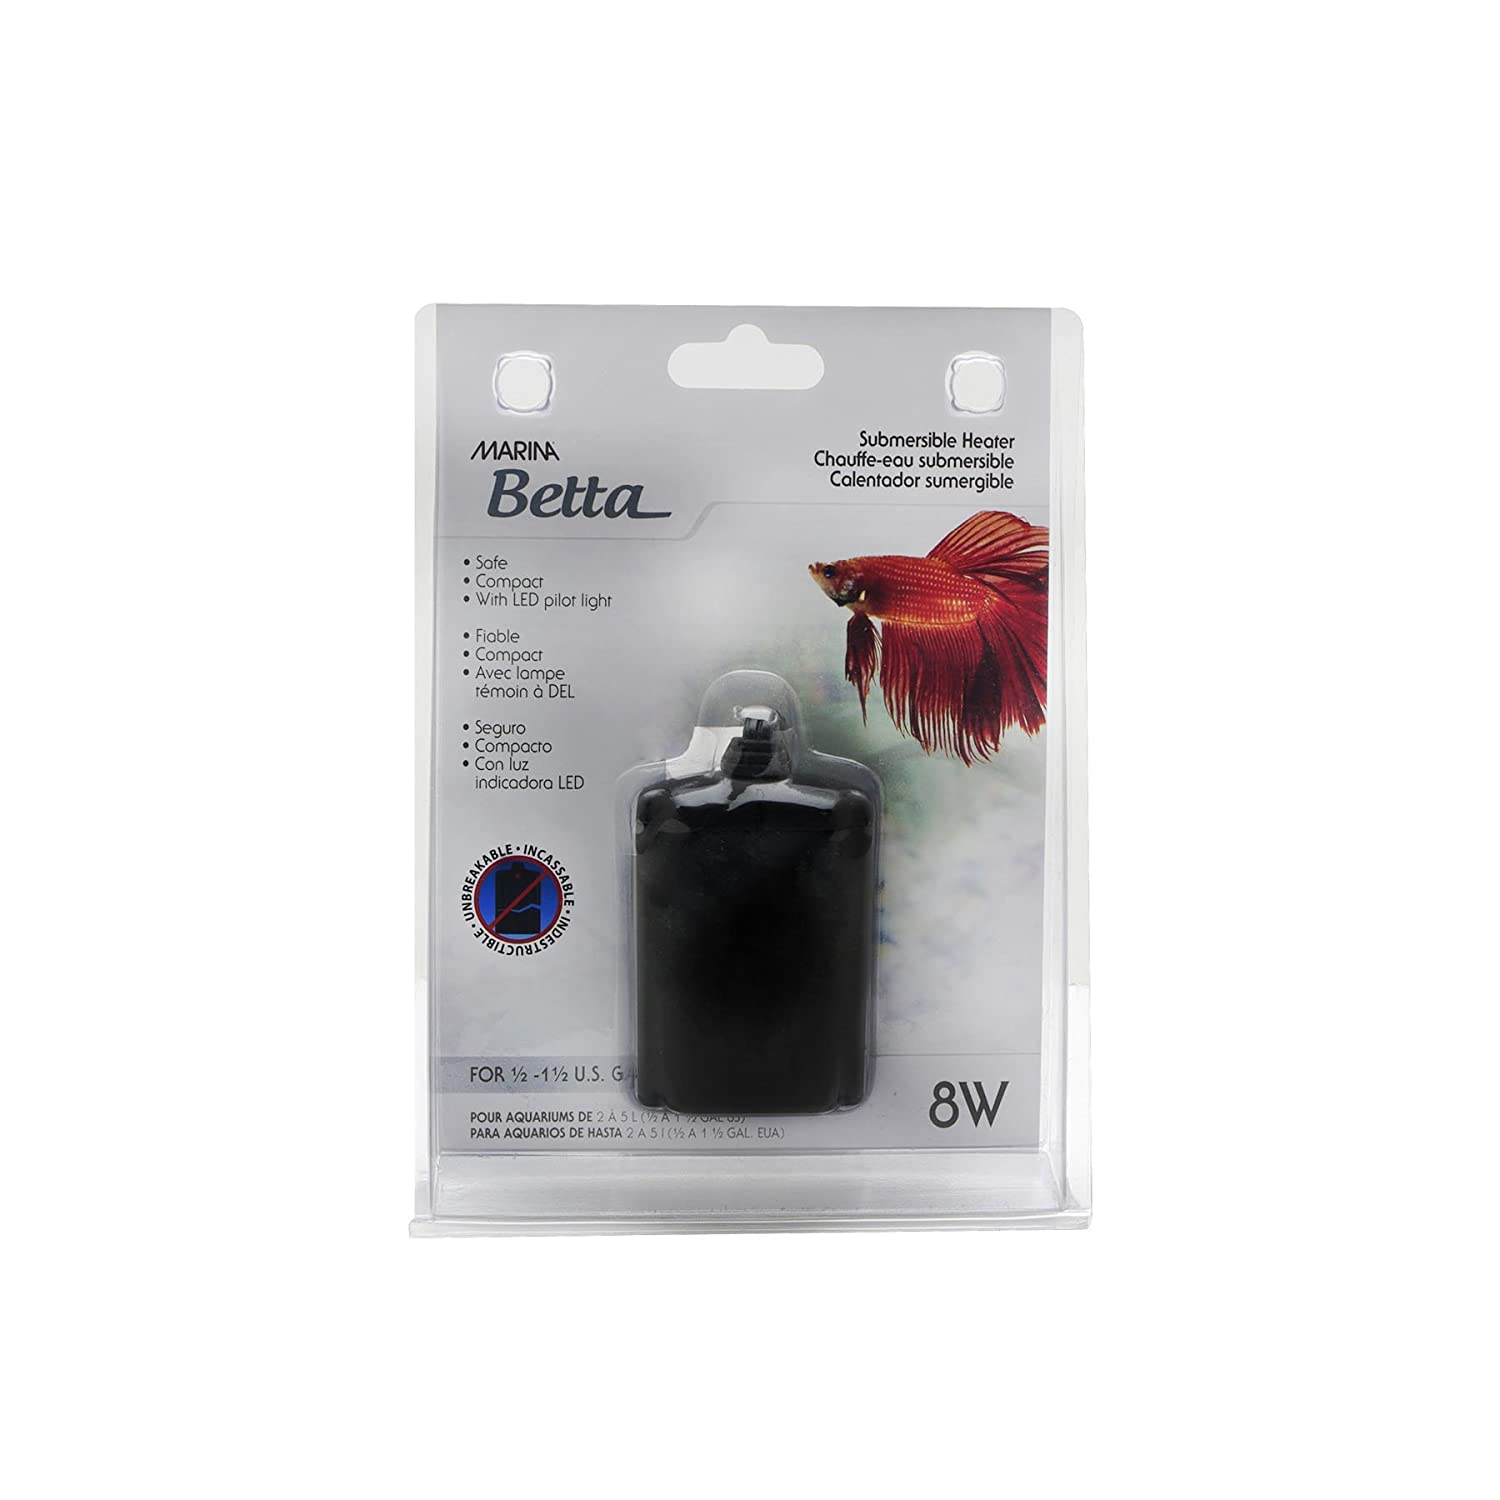 Marina Betta Submersible Heater for Aquarium 11182